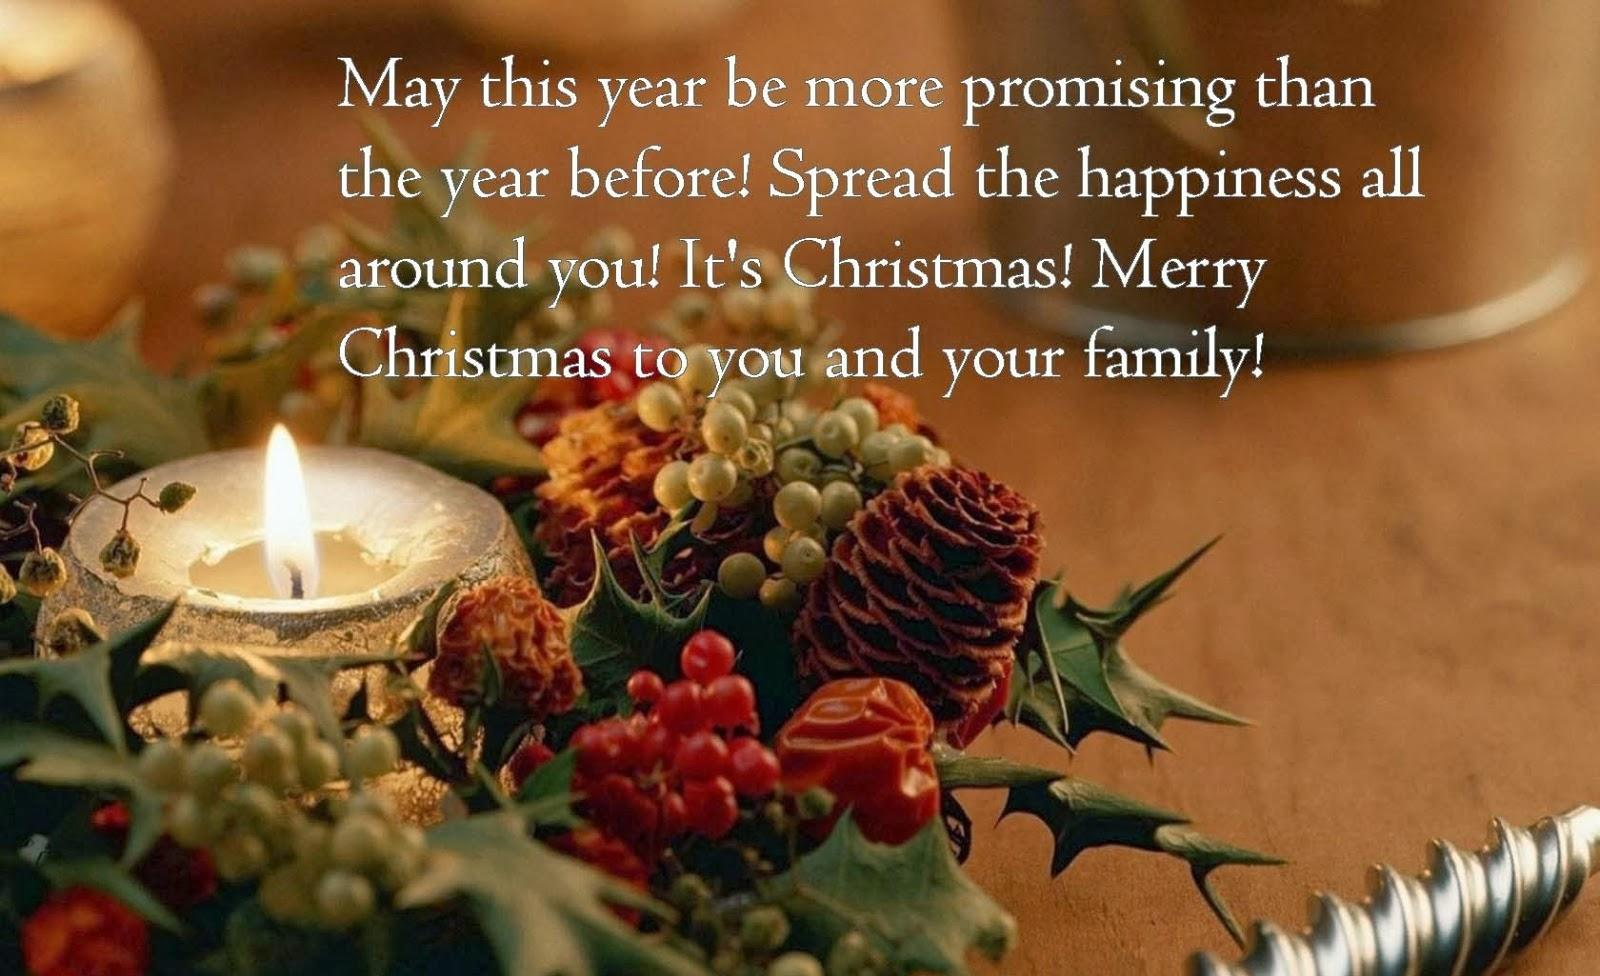 Merry-Christmas-Greeting-Cards-for-Friends-Family-Xmas-wishes-6